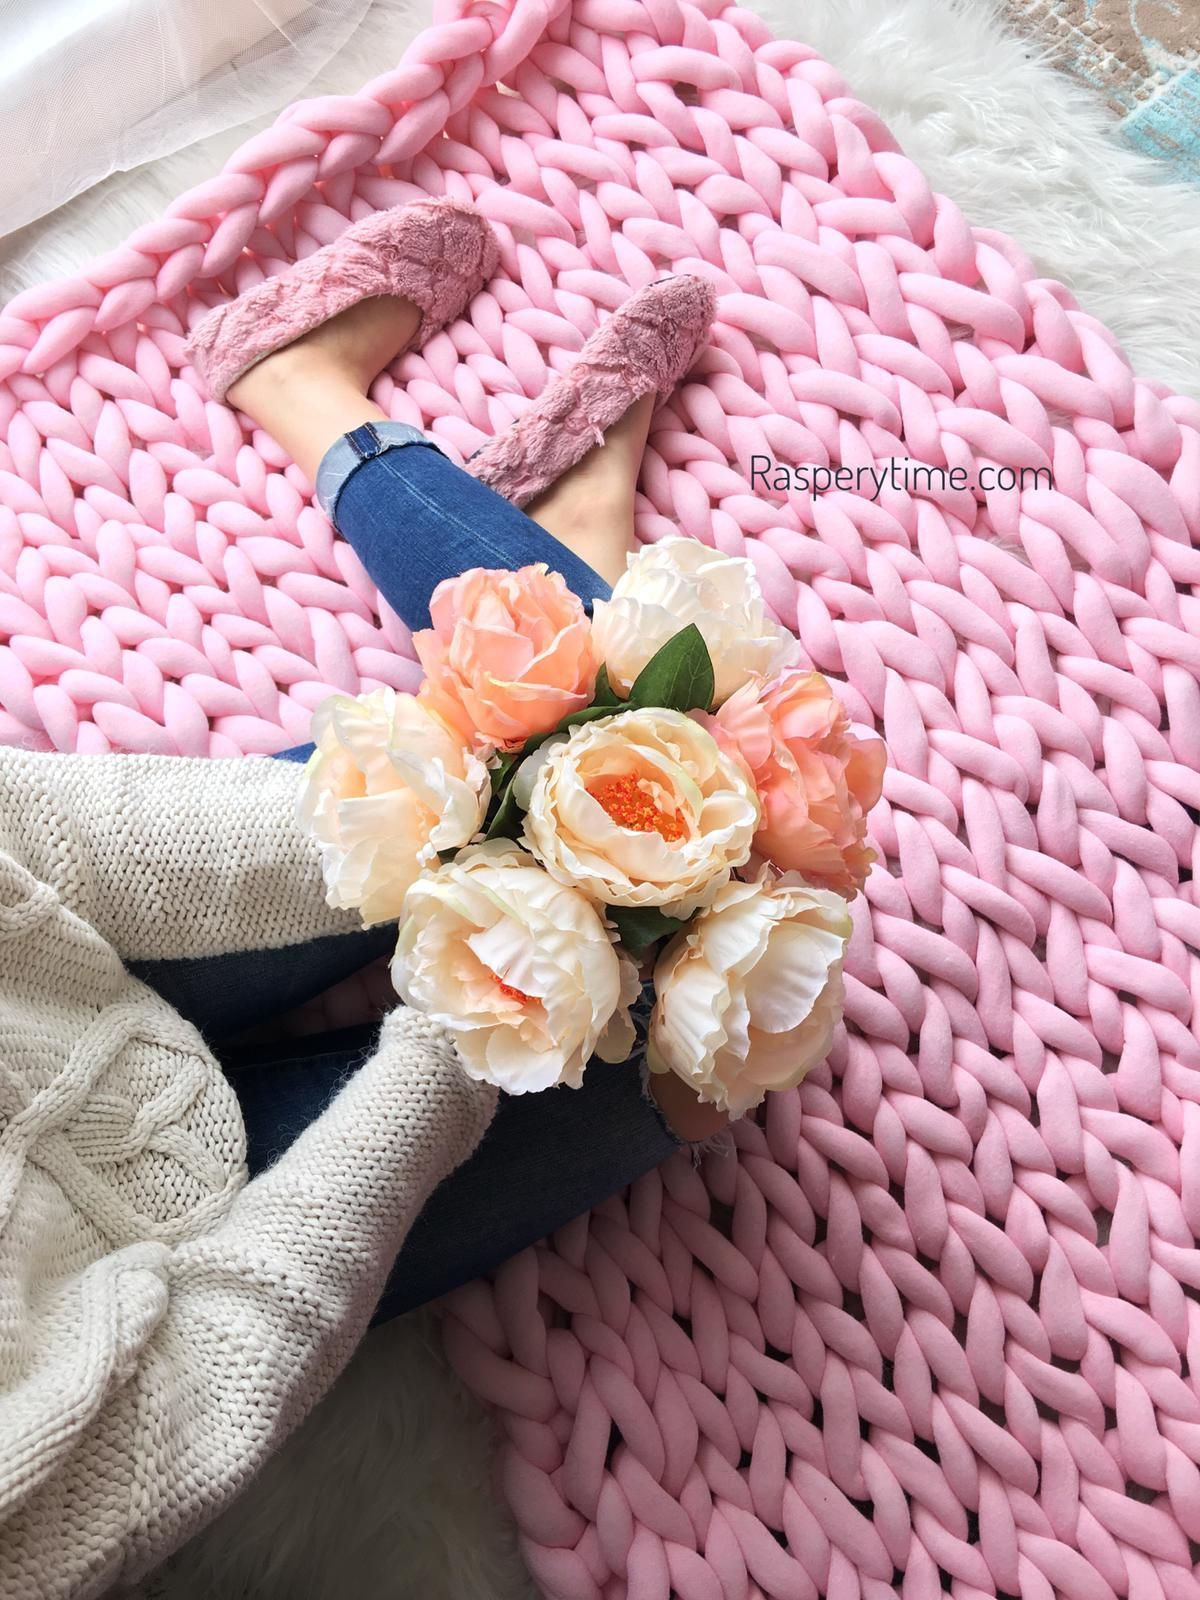 chunky knit blanket in 2020 Knitted blankets, Chunky